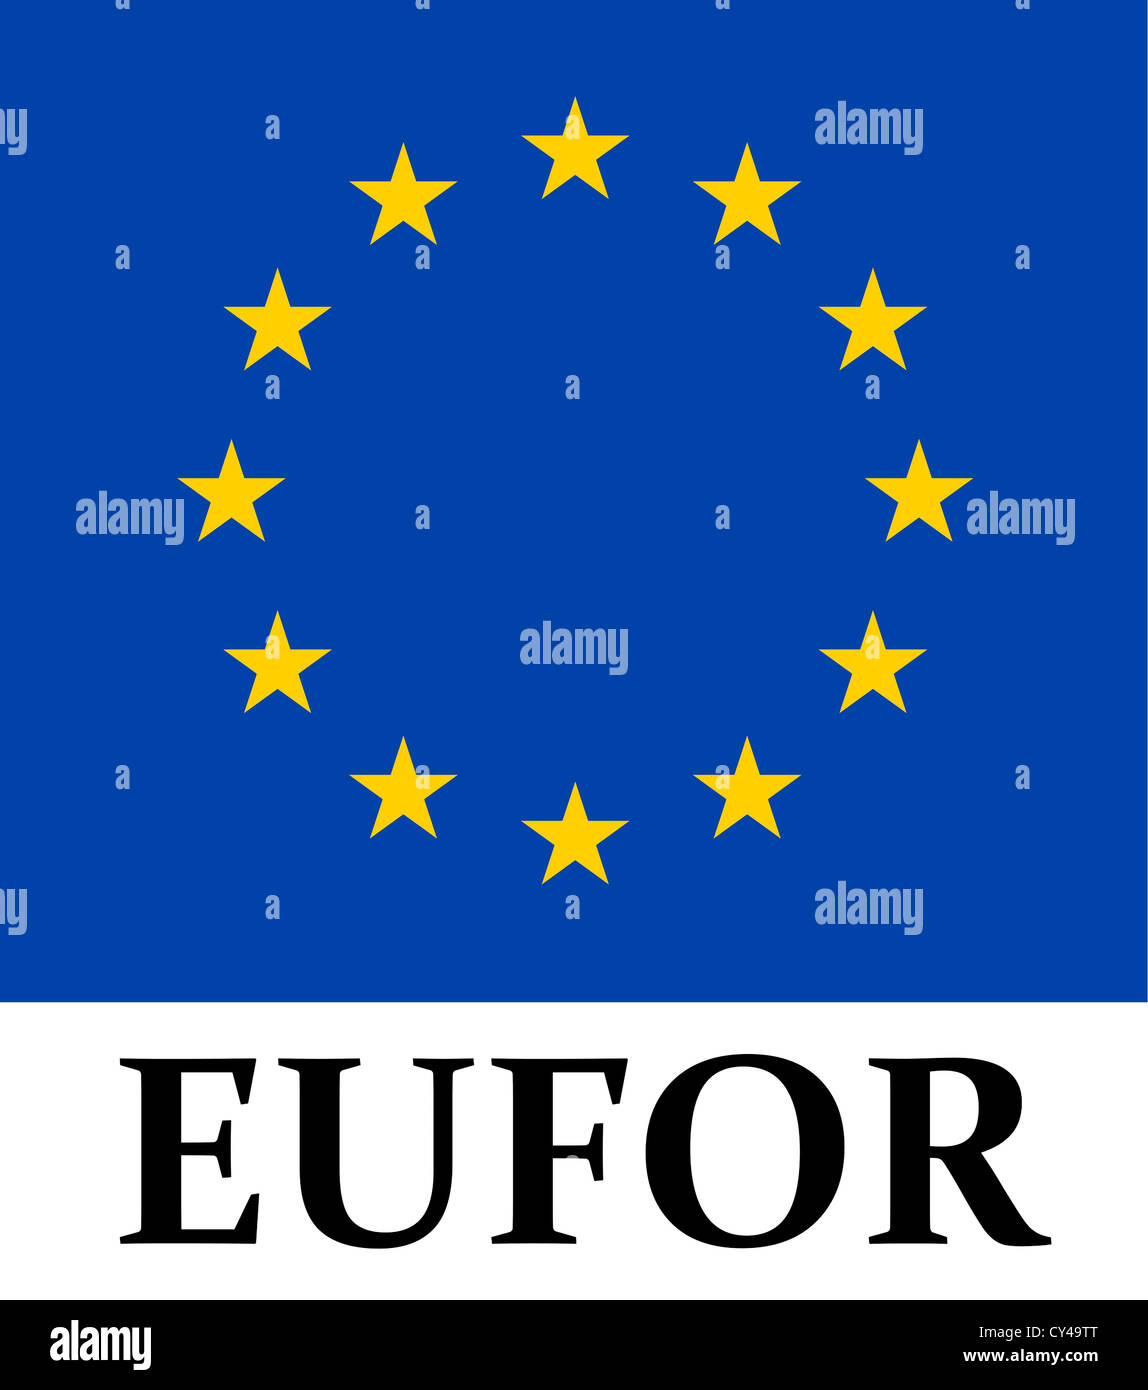 Coat of arms of the multinational armed forces associations of the European Union EUFOR - European Union Force. - Stock Image